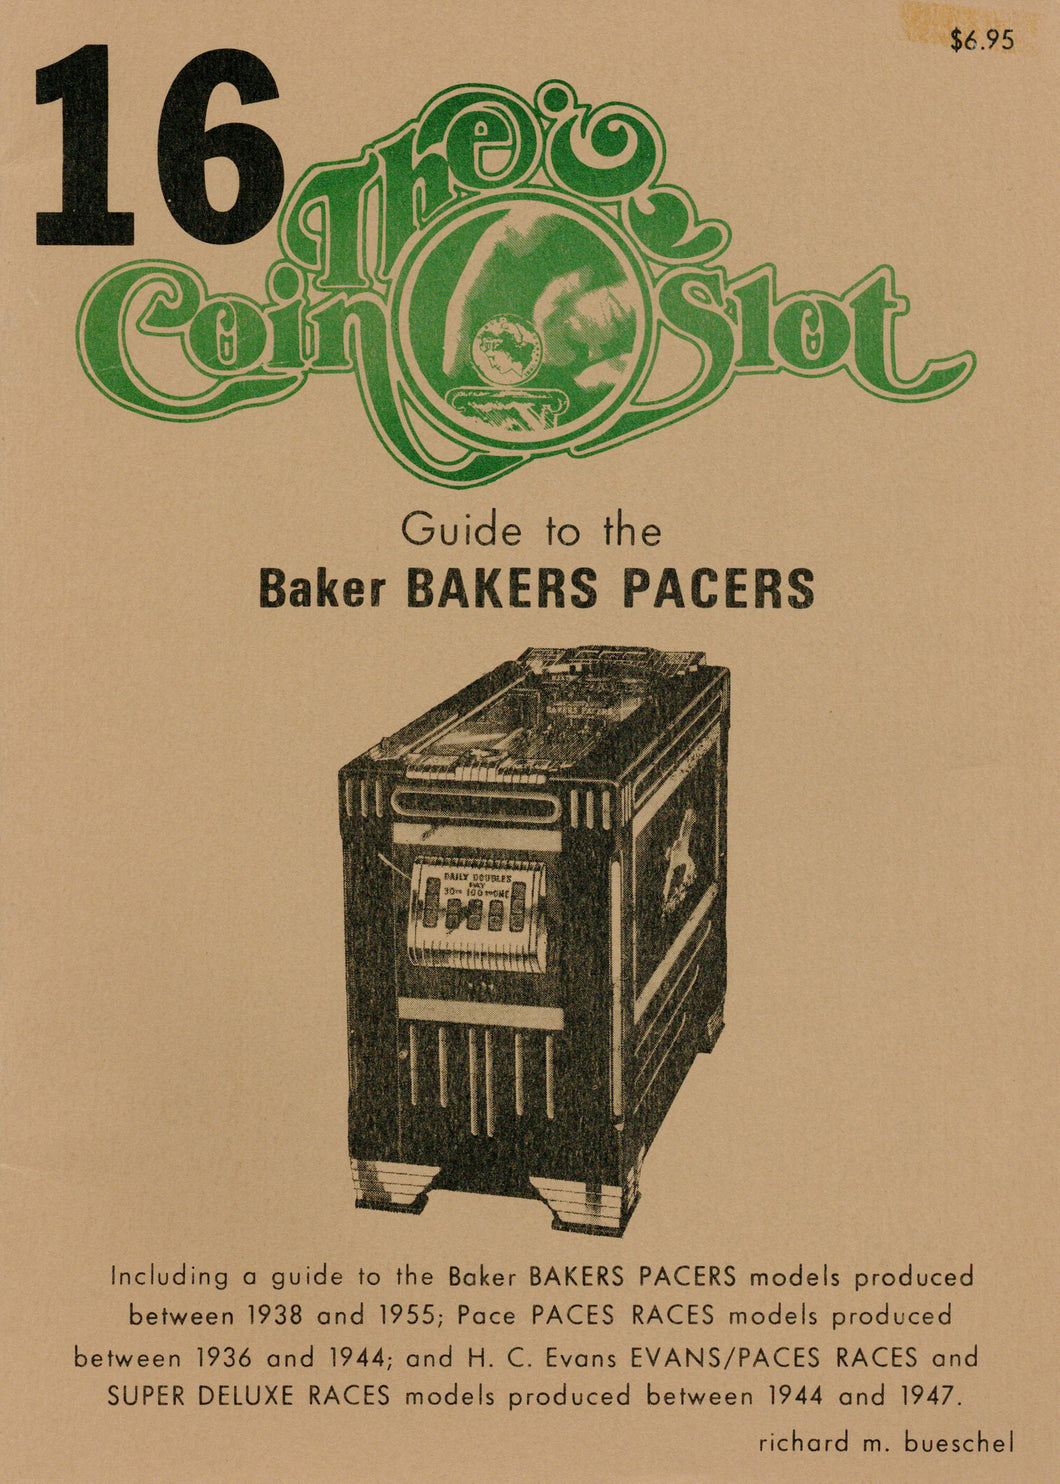 Coin Slot #16. Guide to the Baker Bakers Paces